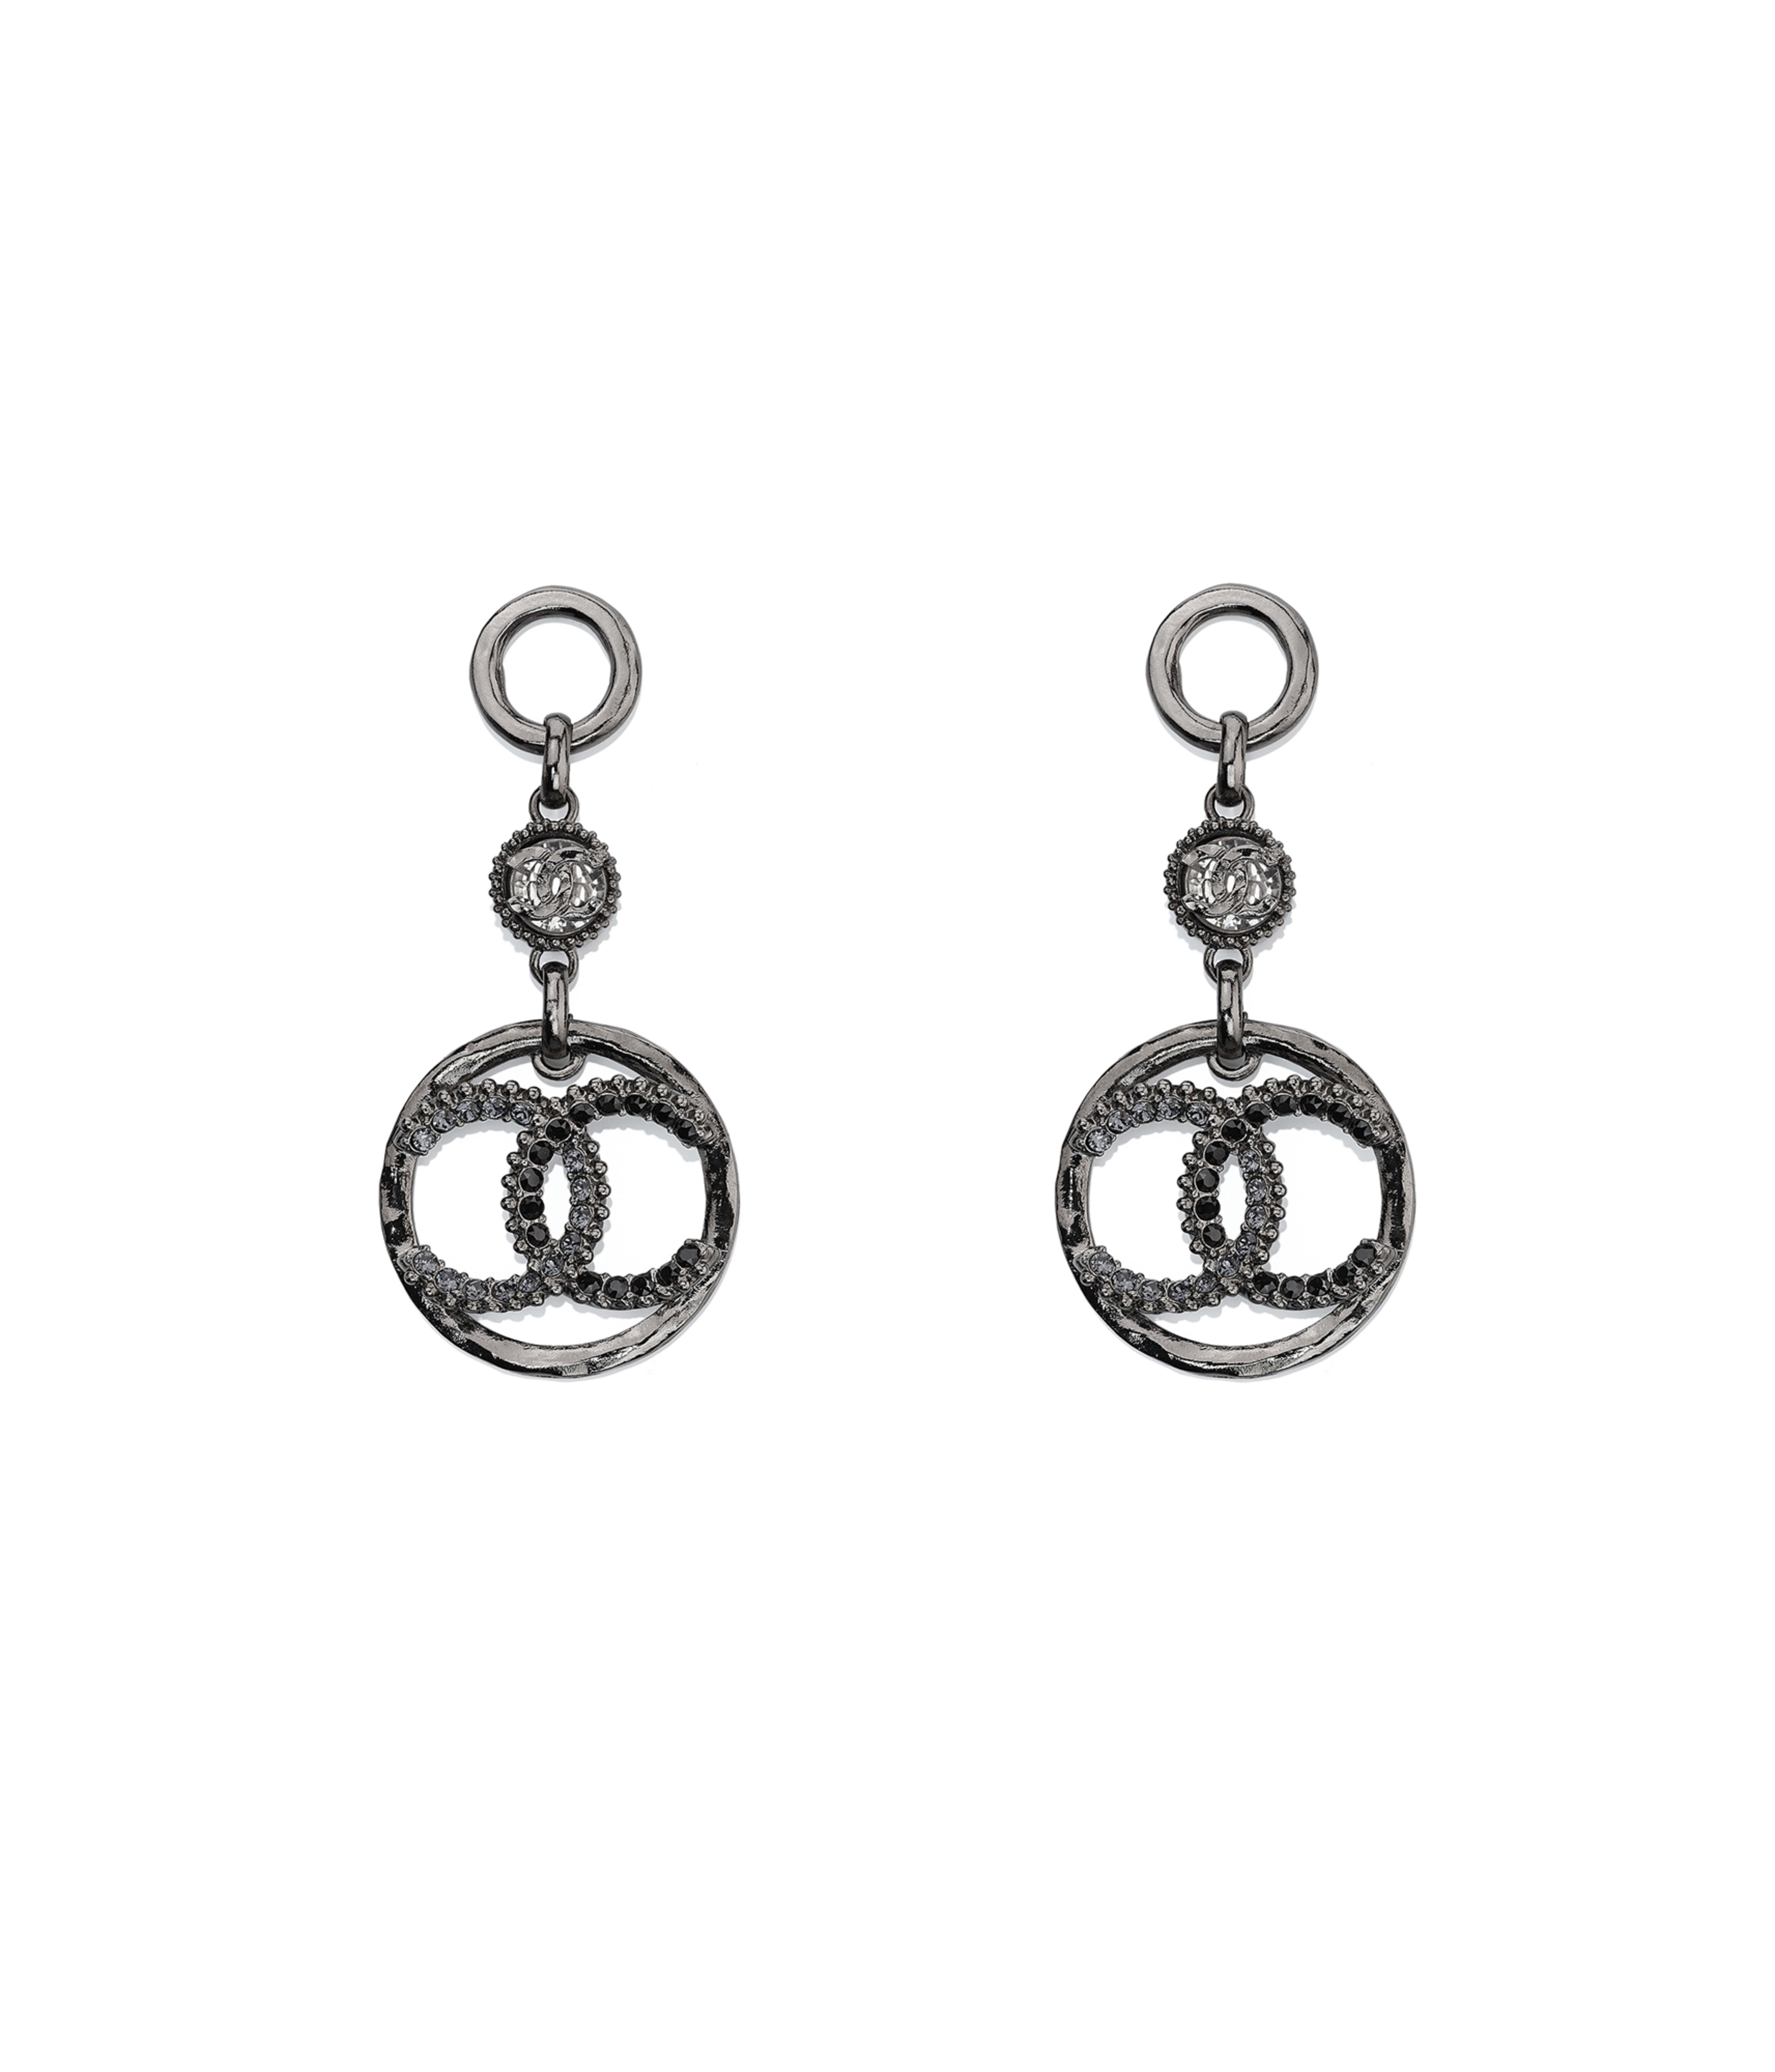 Earrings Costume Jewelry Chanel